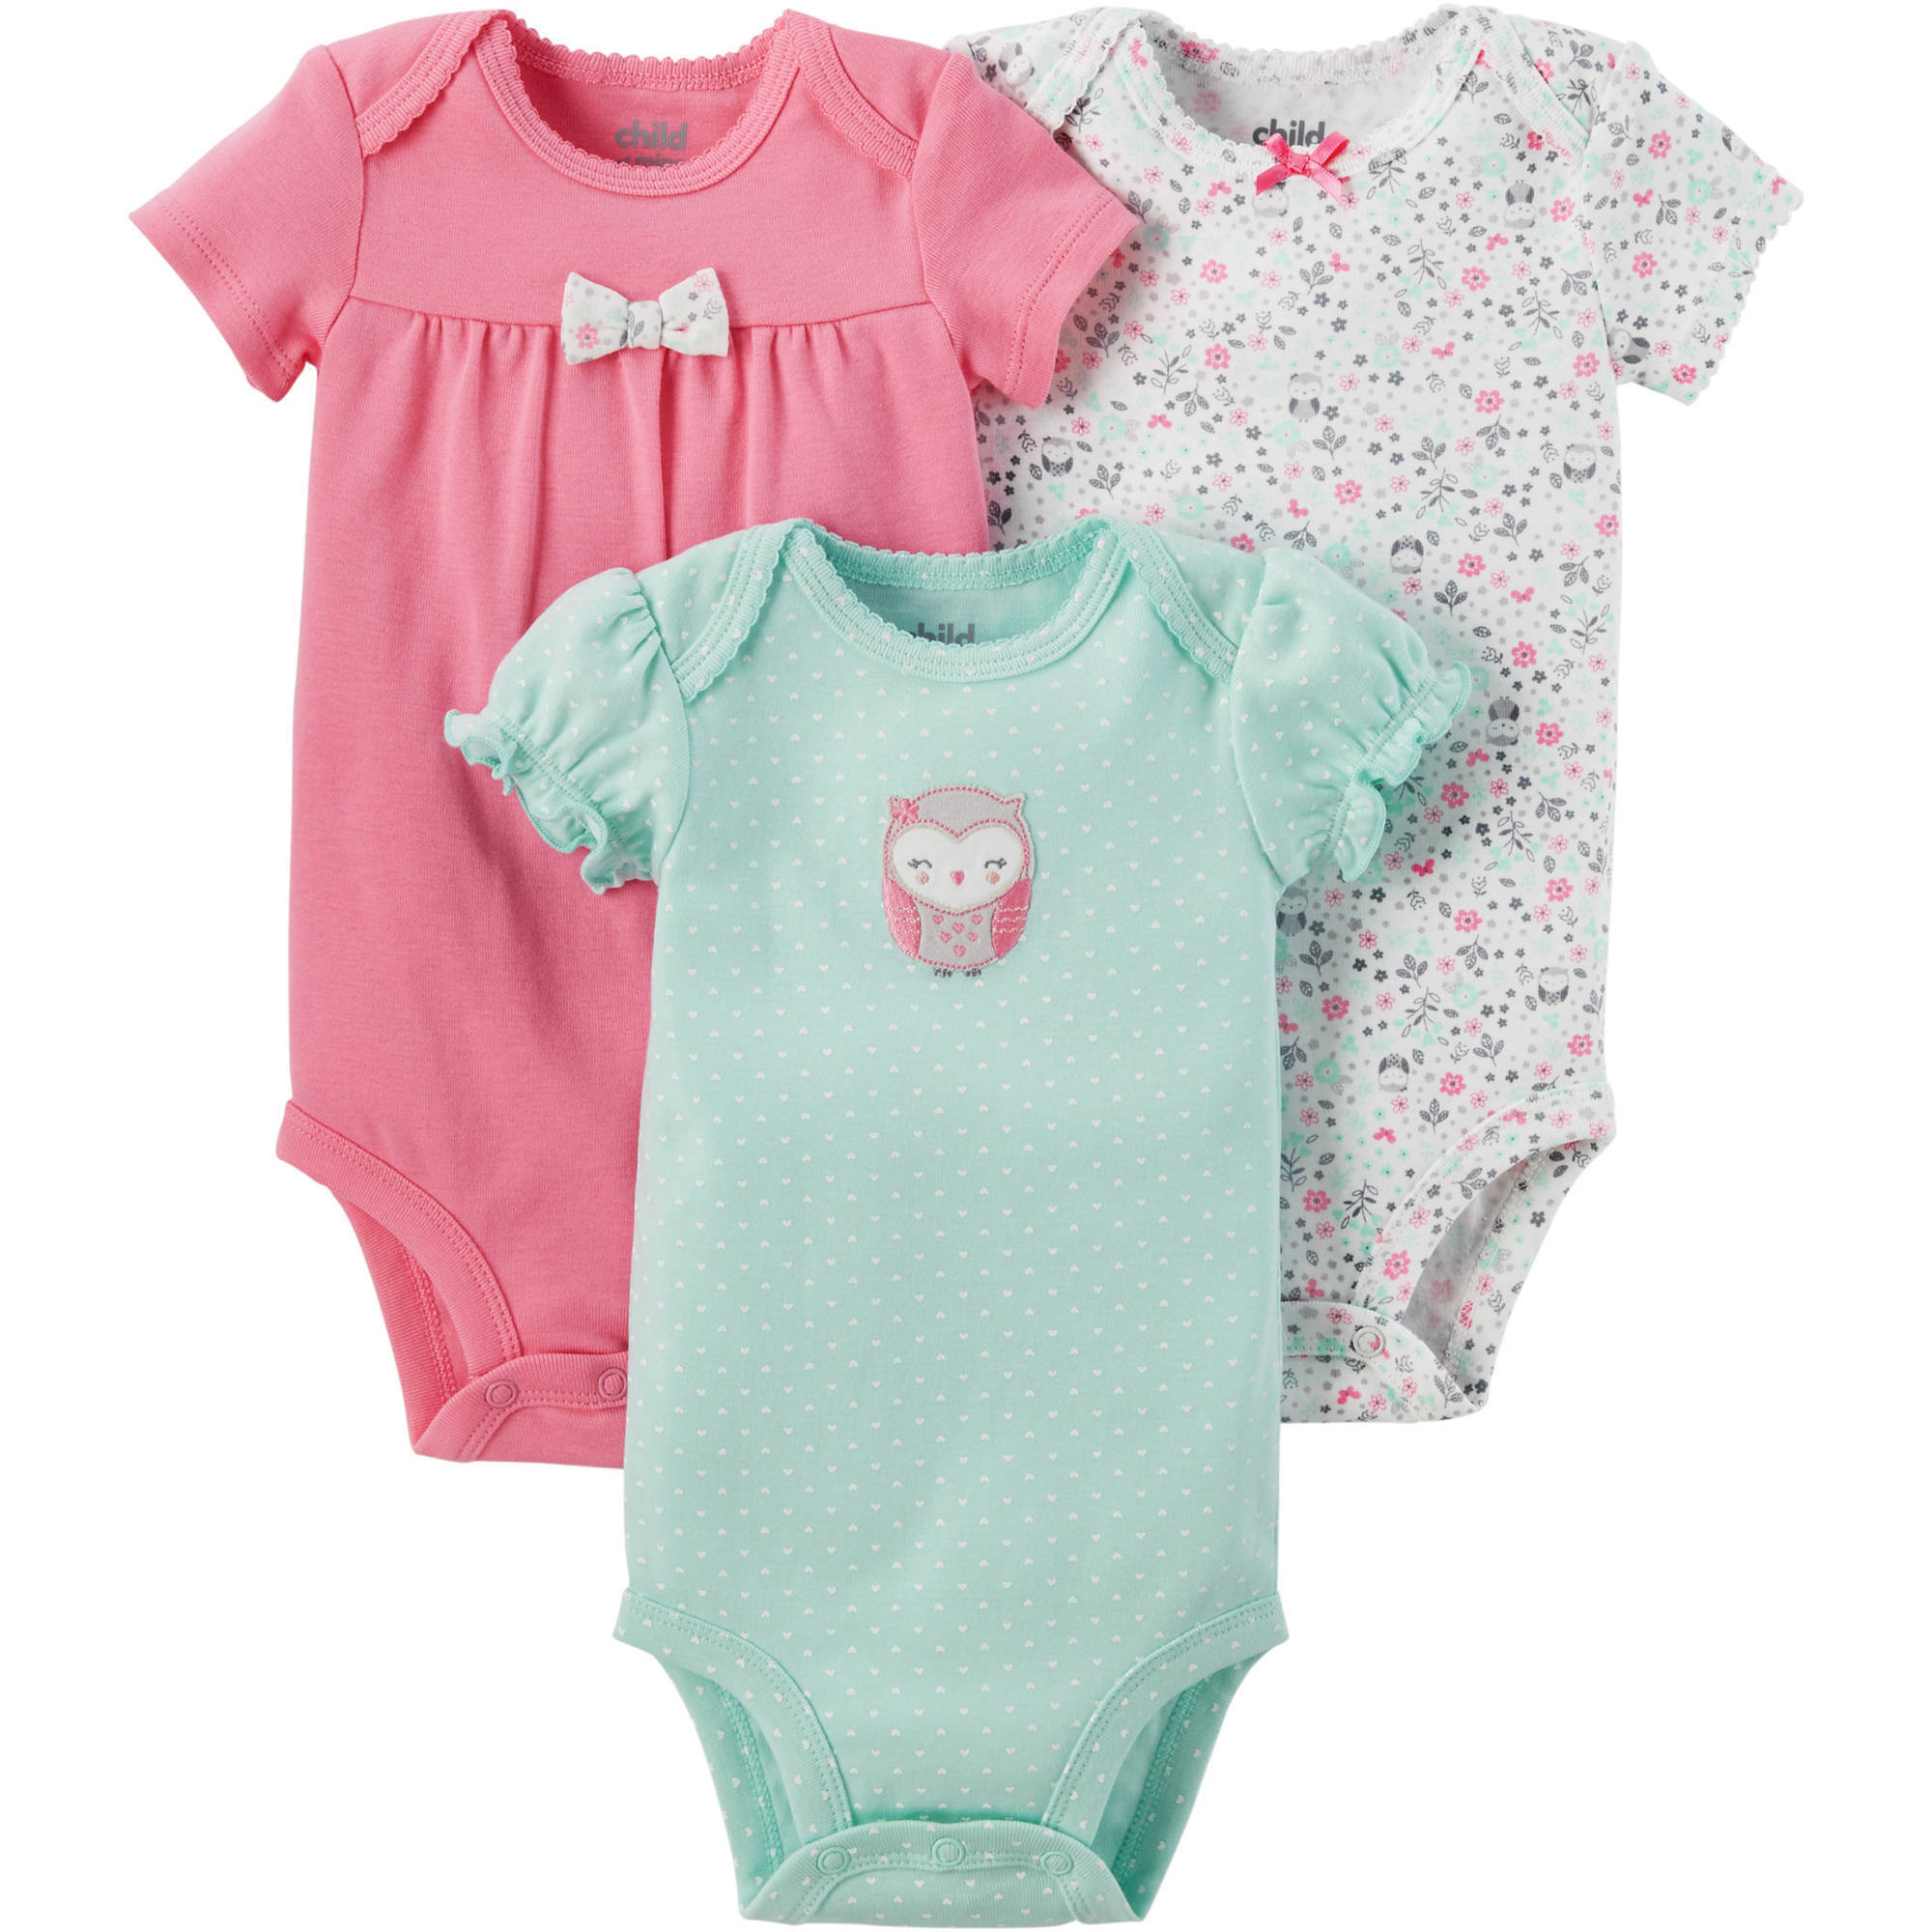 Child of Mine by Carter's Newborn Baby Girl 3 Pack Bodysuit